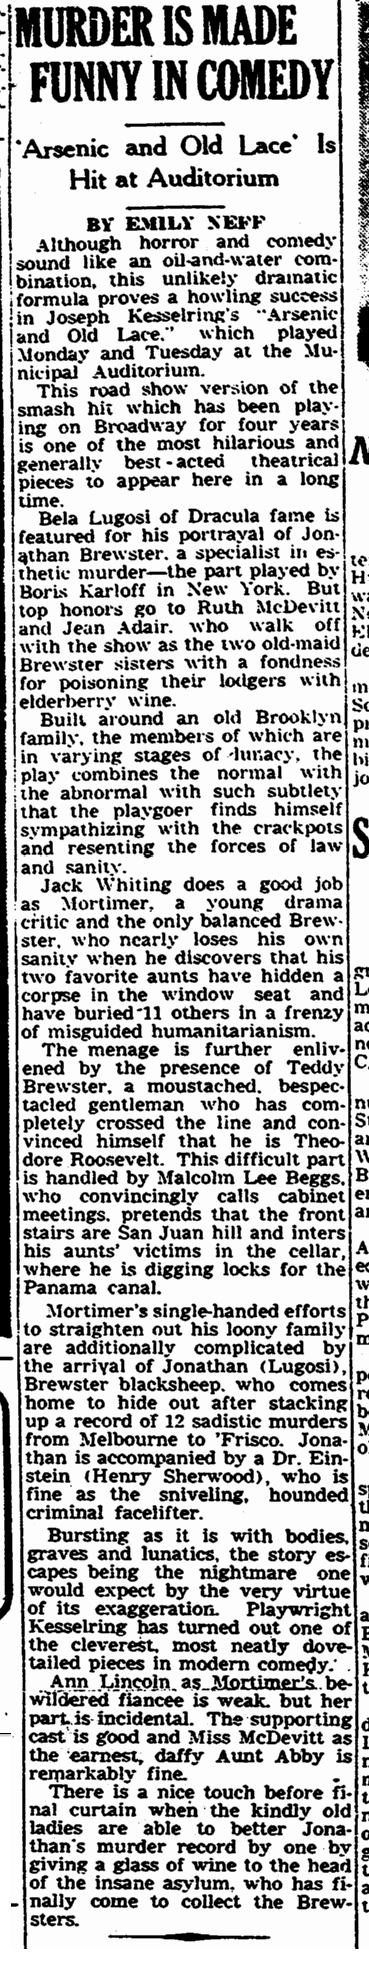 Arsenic and Old Lace, The Times-Picayune, February 9, 1944